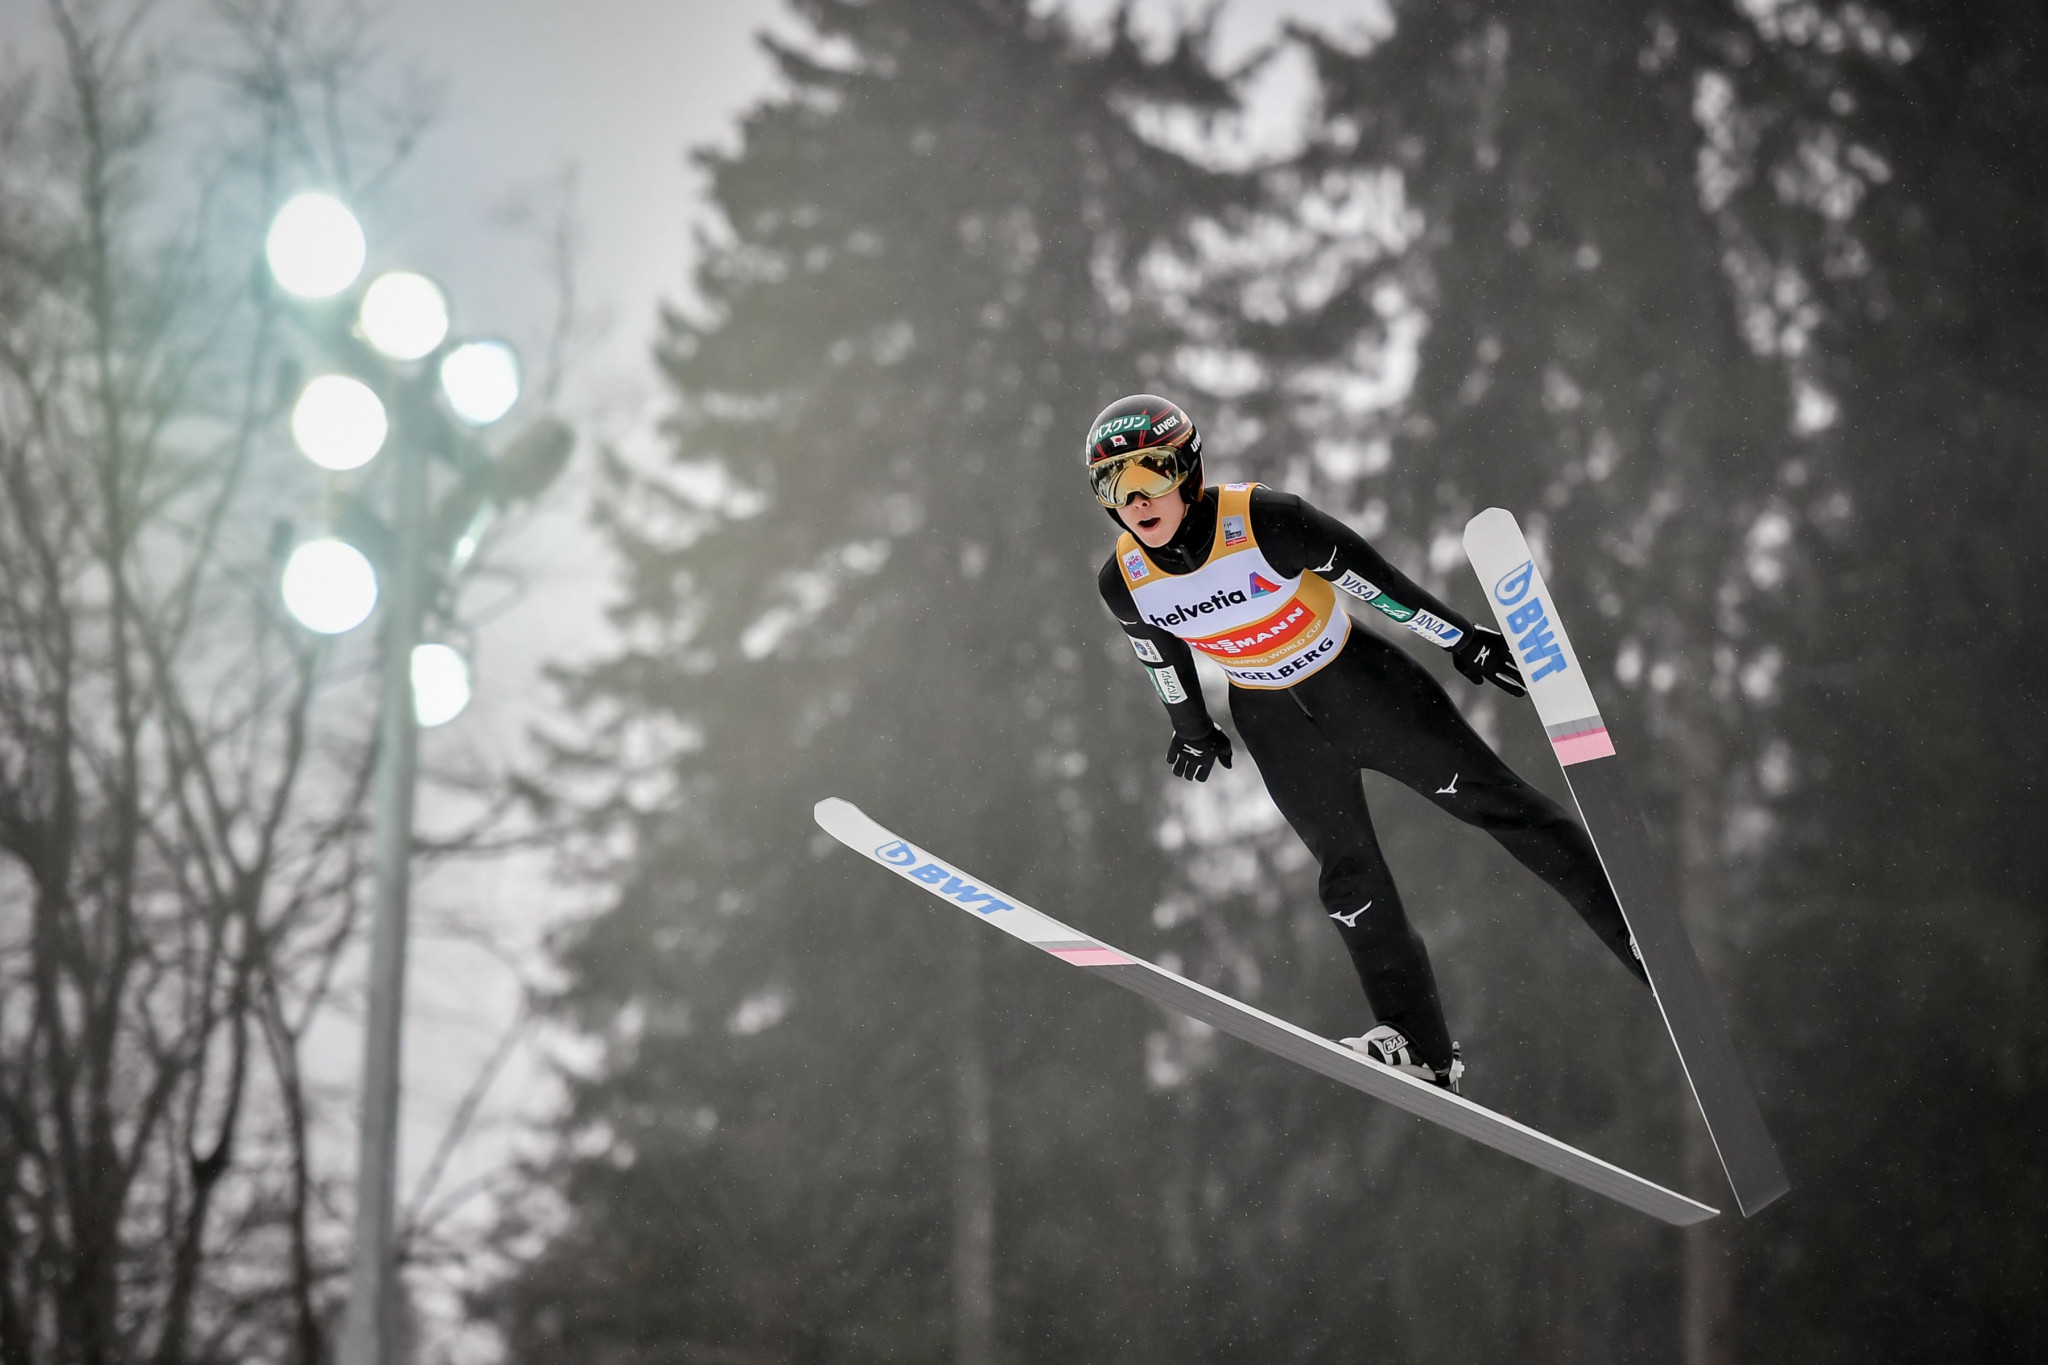 Japan's Ryoyu Kobayashi will look to continue his strong form in the FIS Ski Jumping World Cup in Oberstdorf ©Getty Images